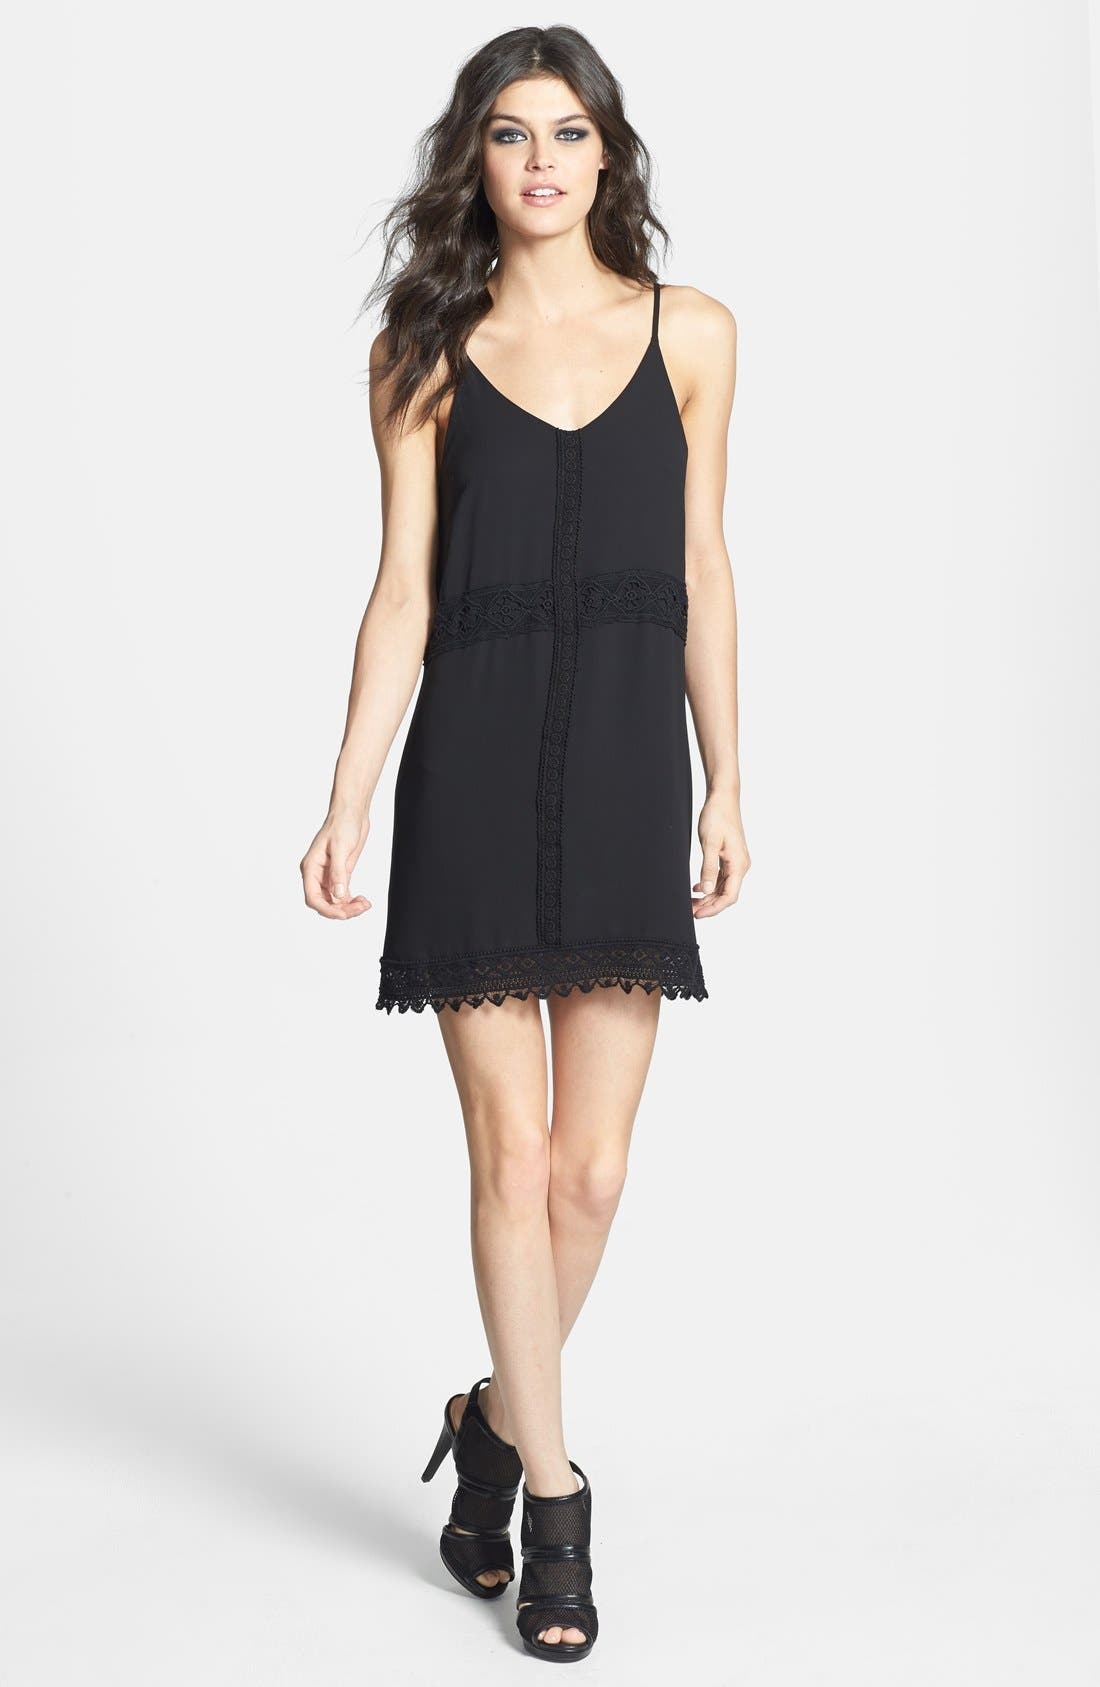 Alternate Image 1 Selected - ASTR Lace Trim Slipdress